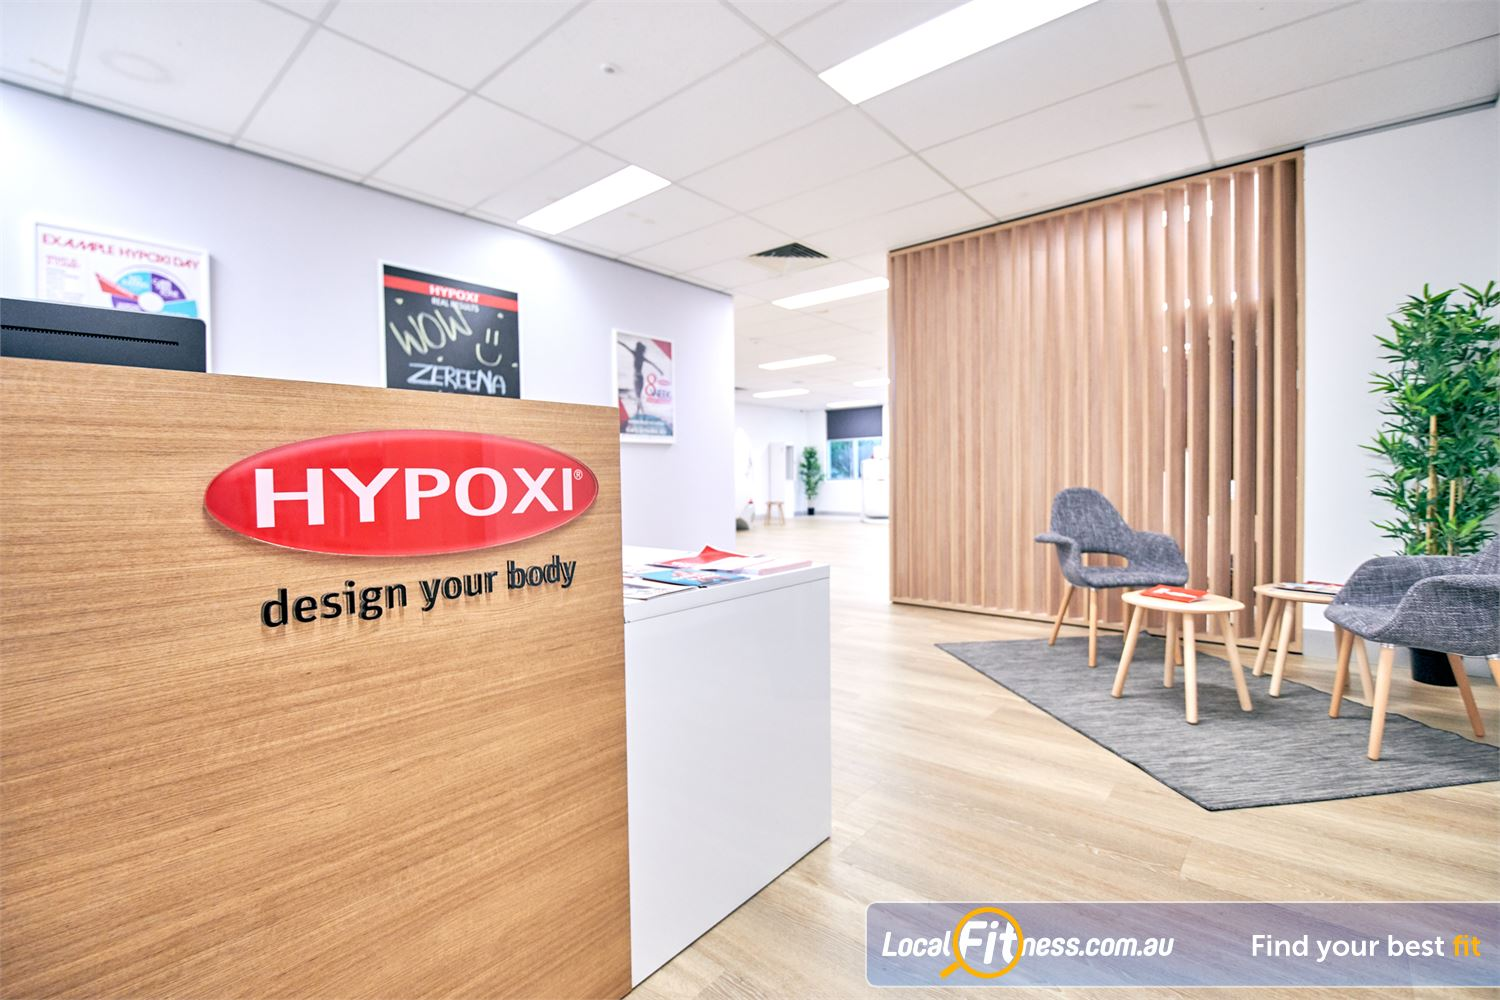 HYPOXI Weight Loss Waterloo Welcome to the HYPOXI Waterloo weight-loss studio.